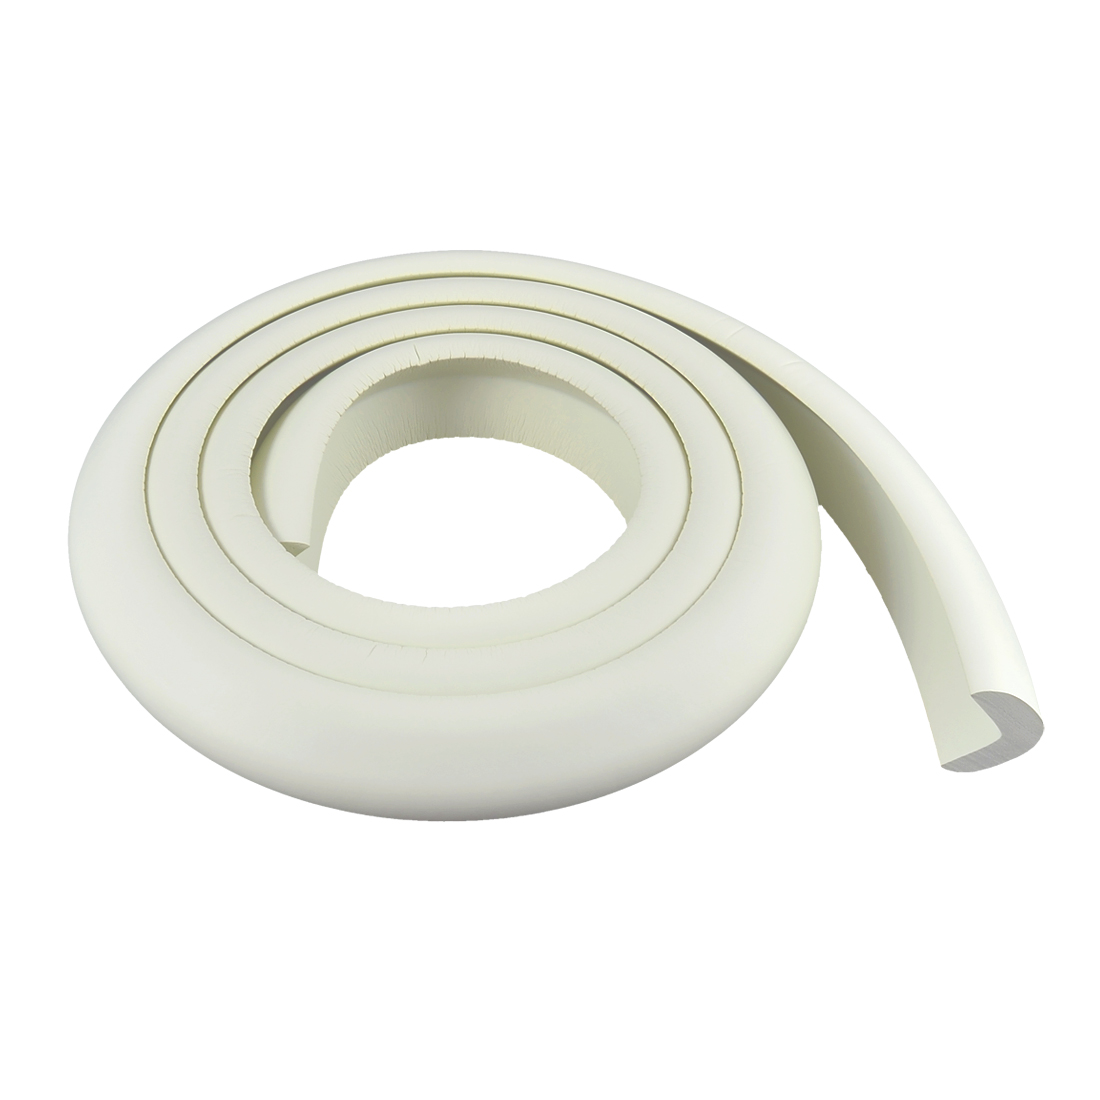 Table Edge Corner Cushion Guard Protector Bumper 35mm x 12mm White